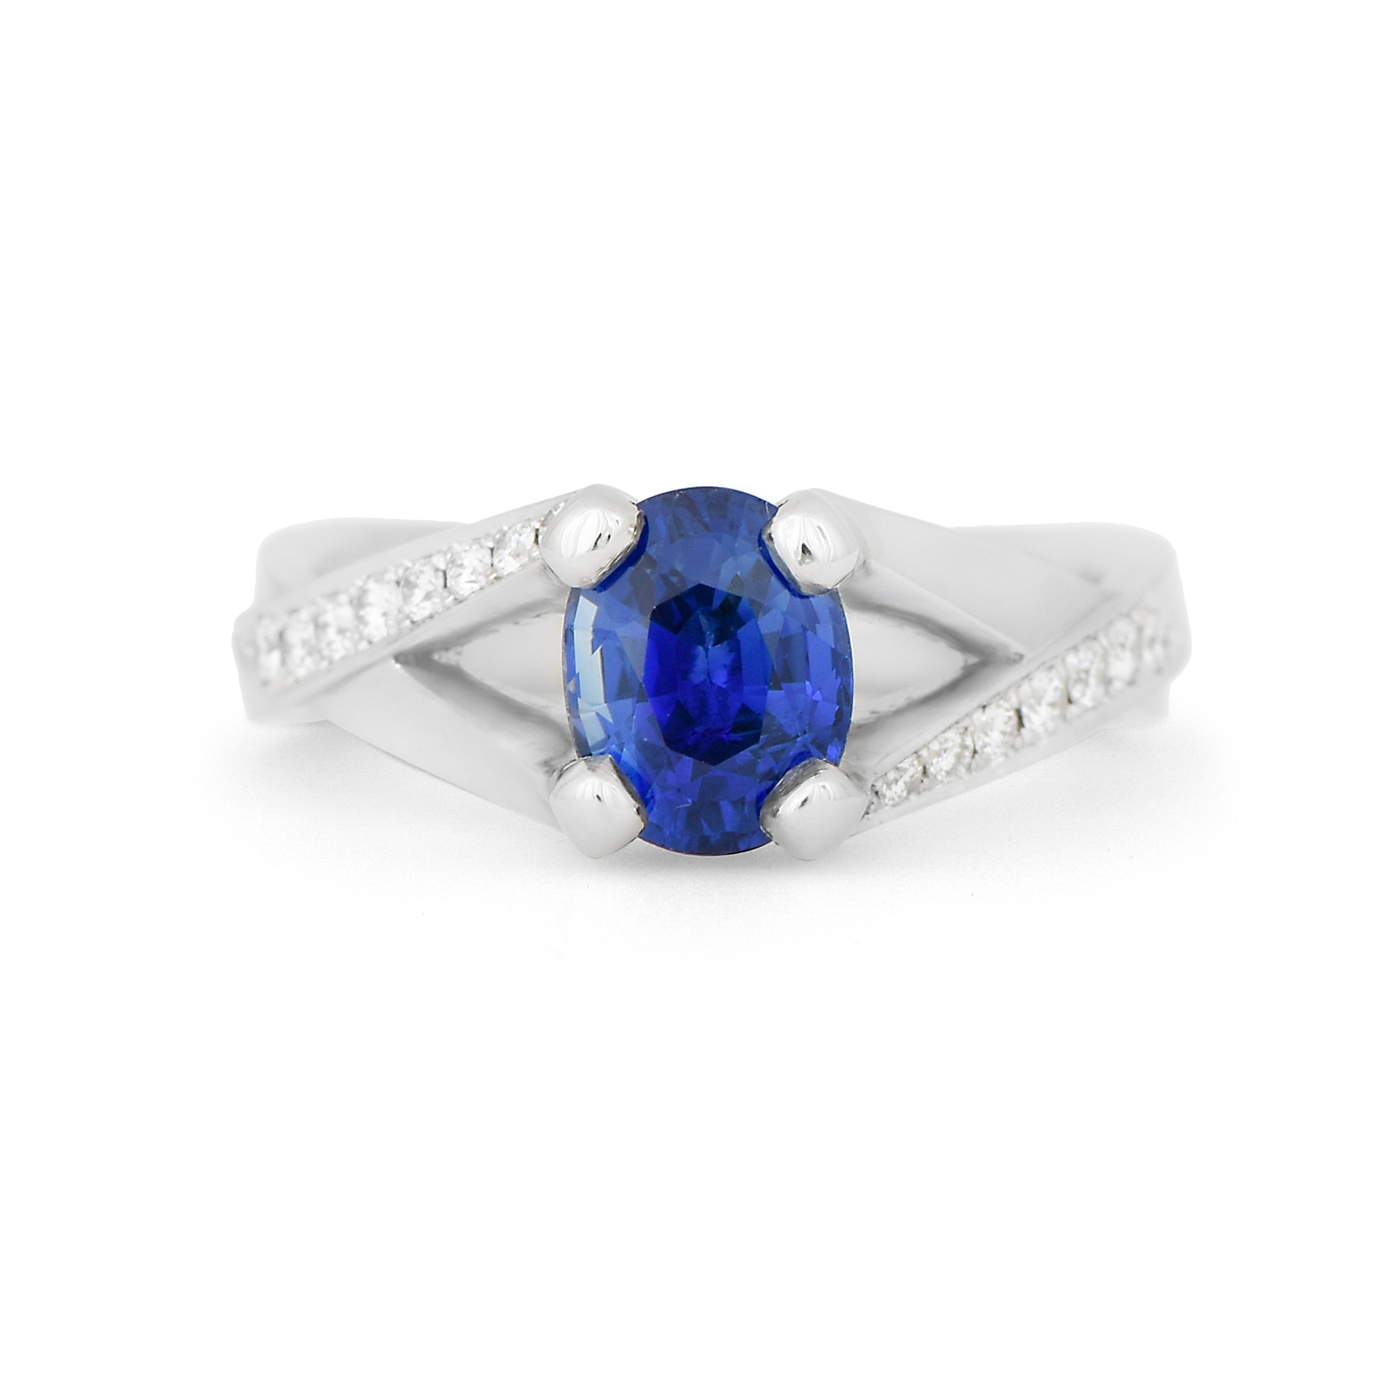 Oval sapphire and diamond ring c8584 dejonghe original for Sapphire studios jewelry reviews